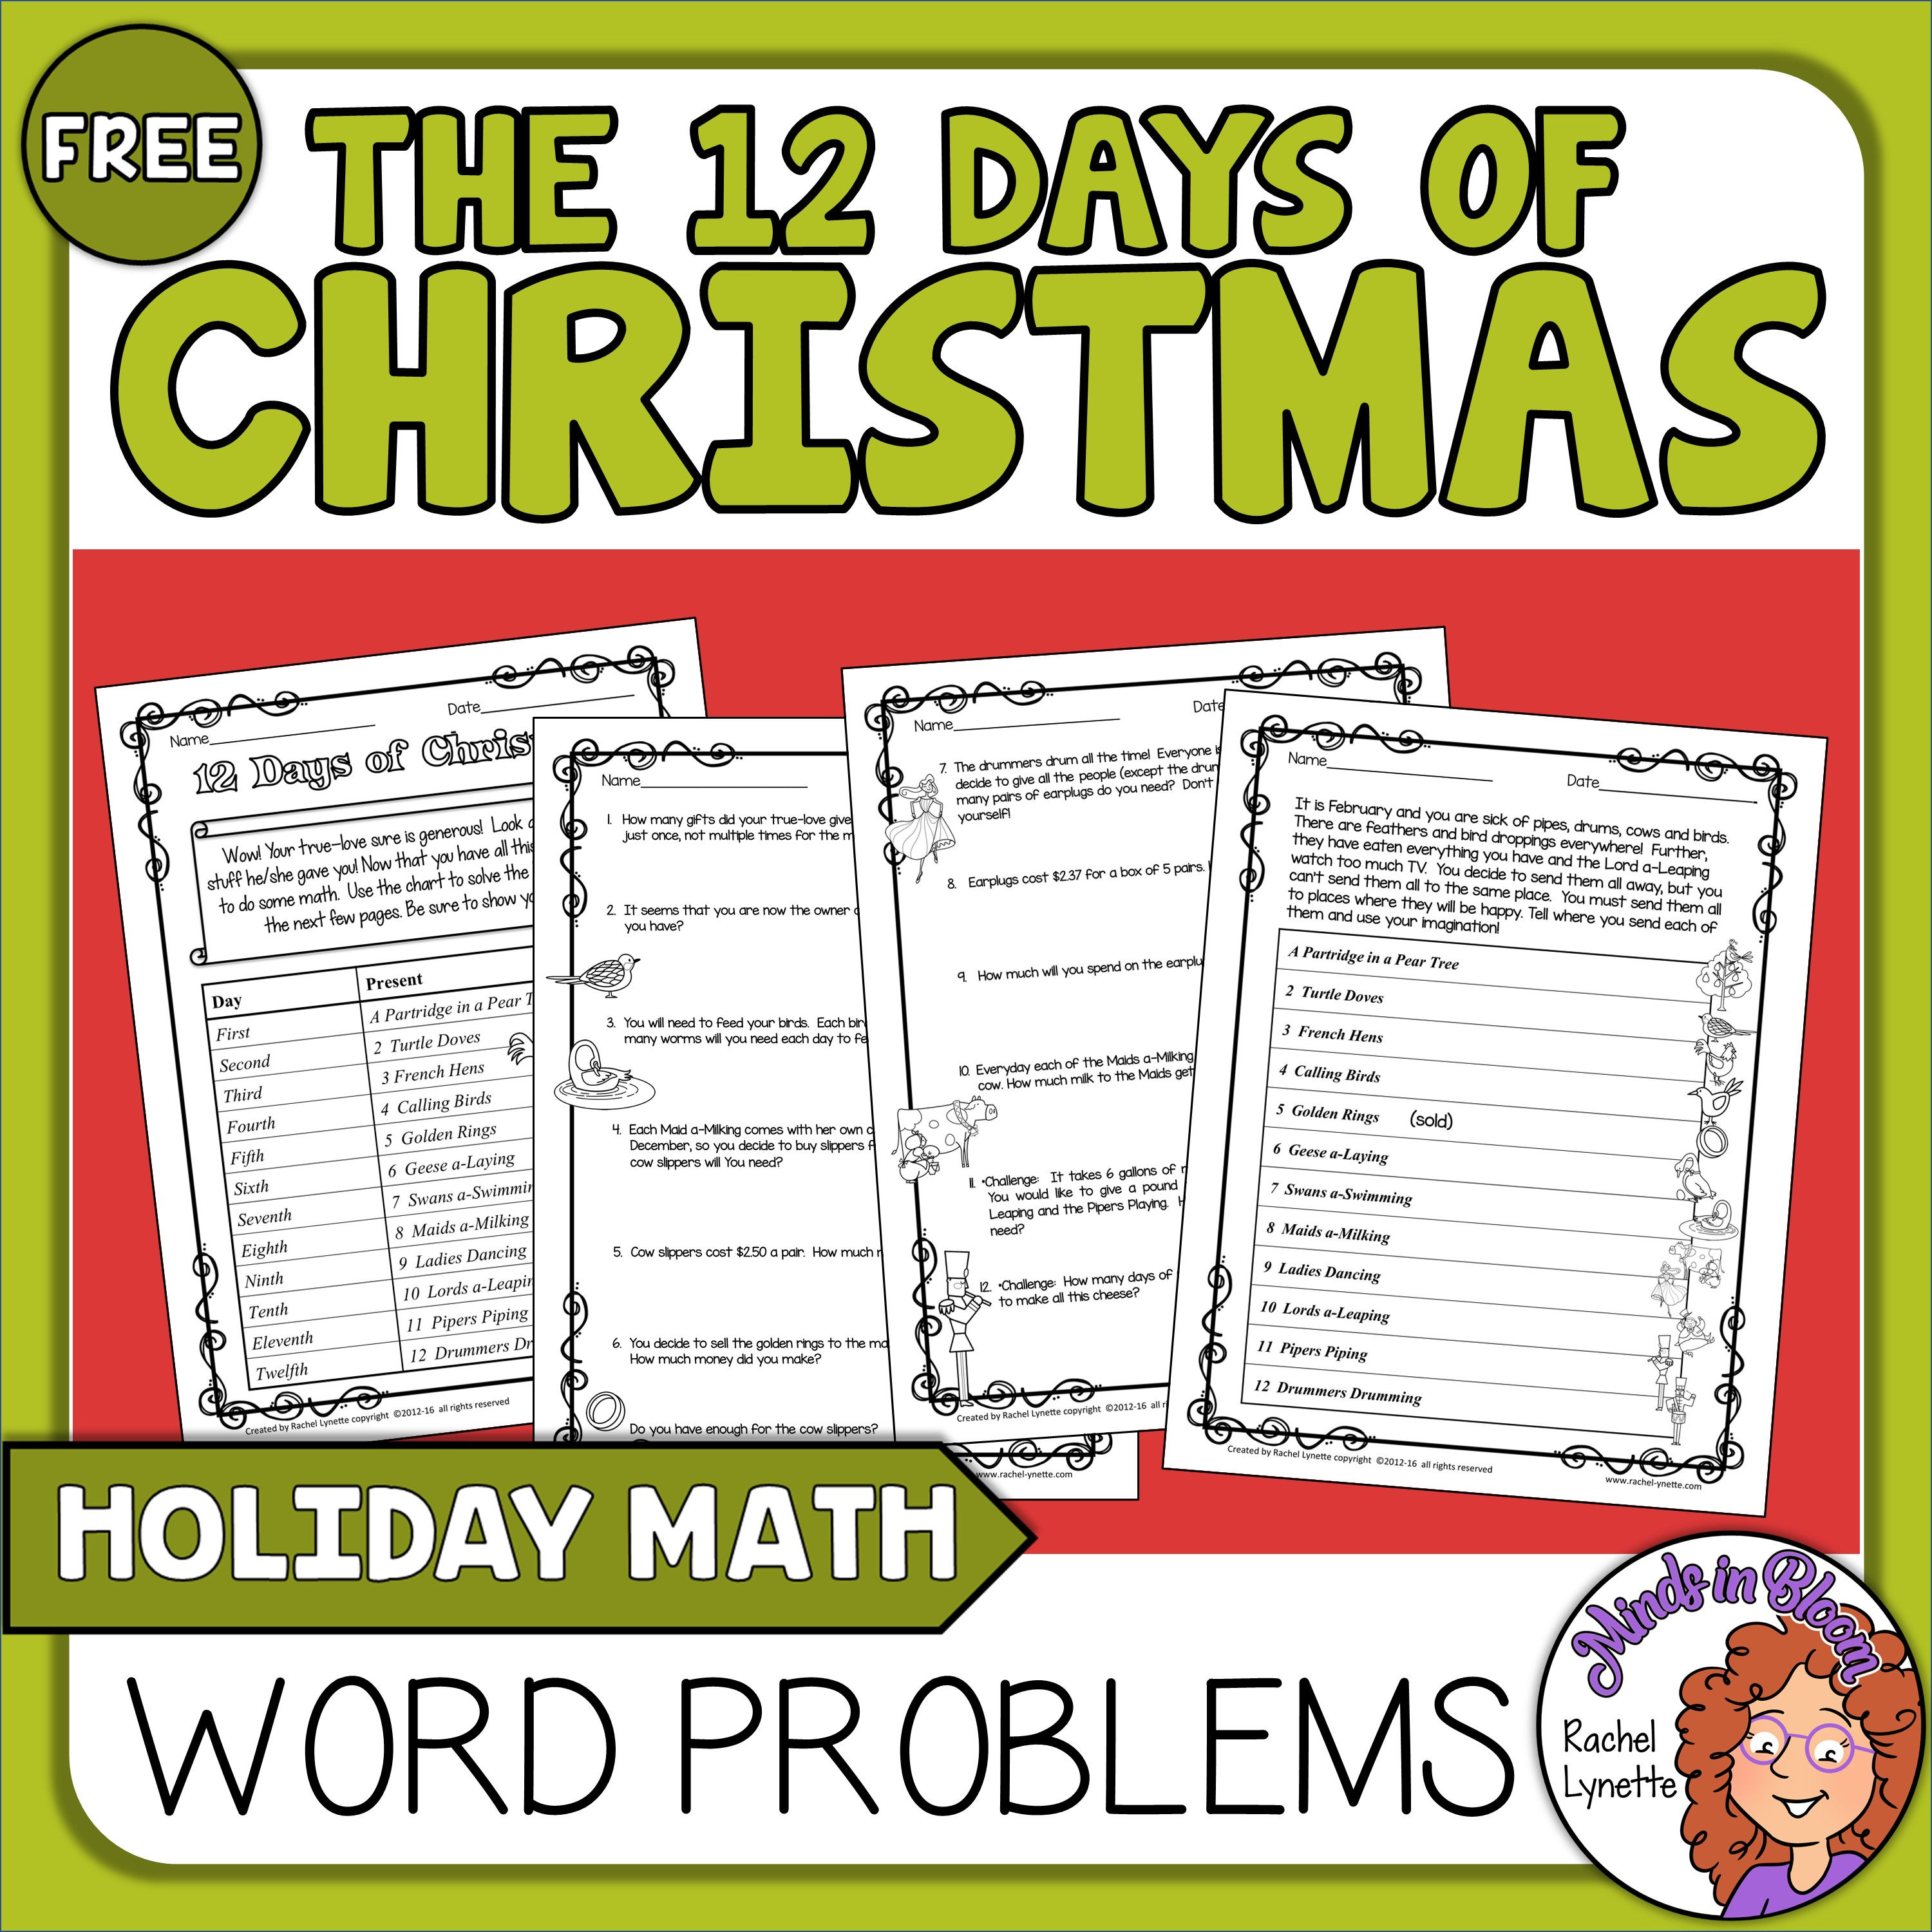 12 Days of Christmas Math Word  Problems  FREE! Image